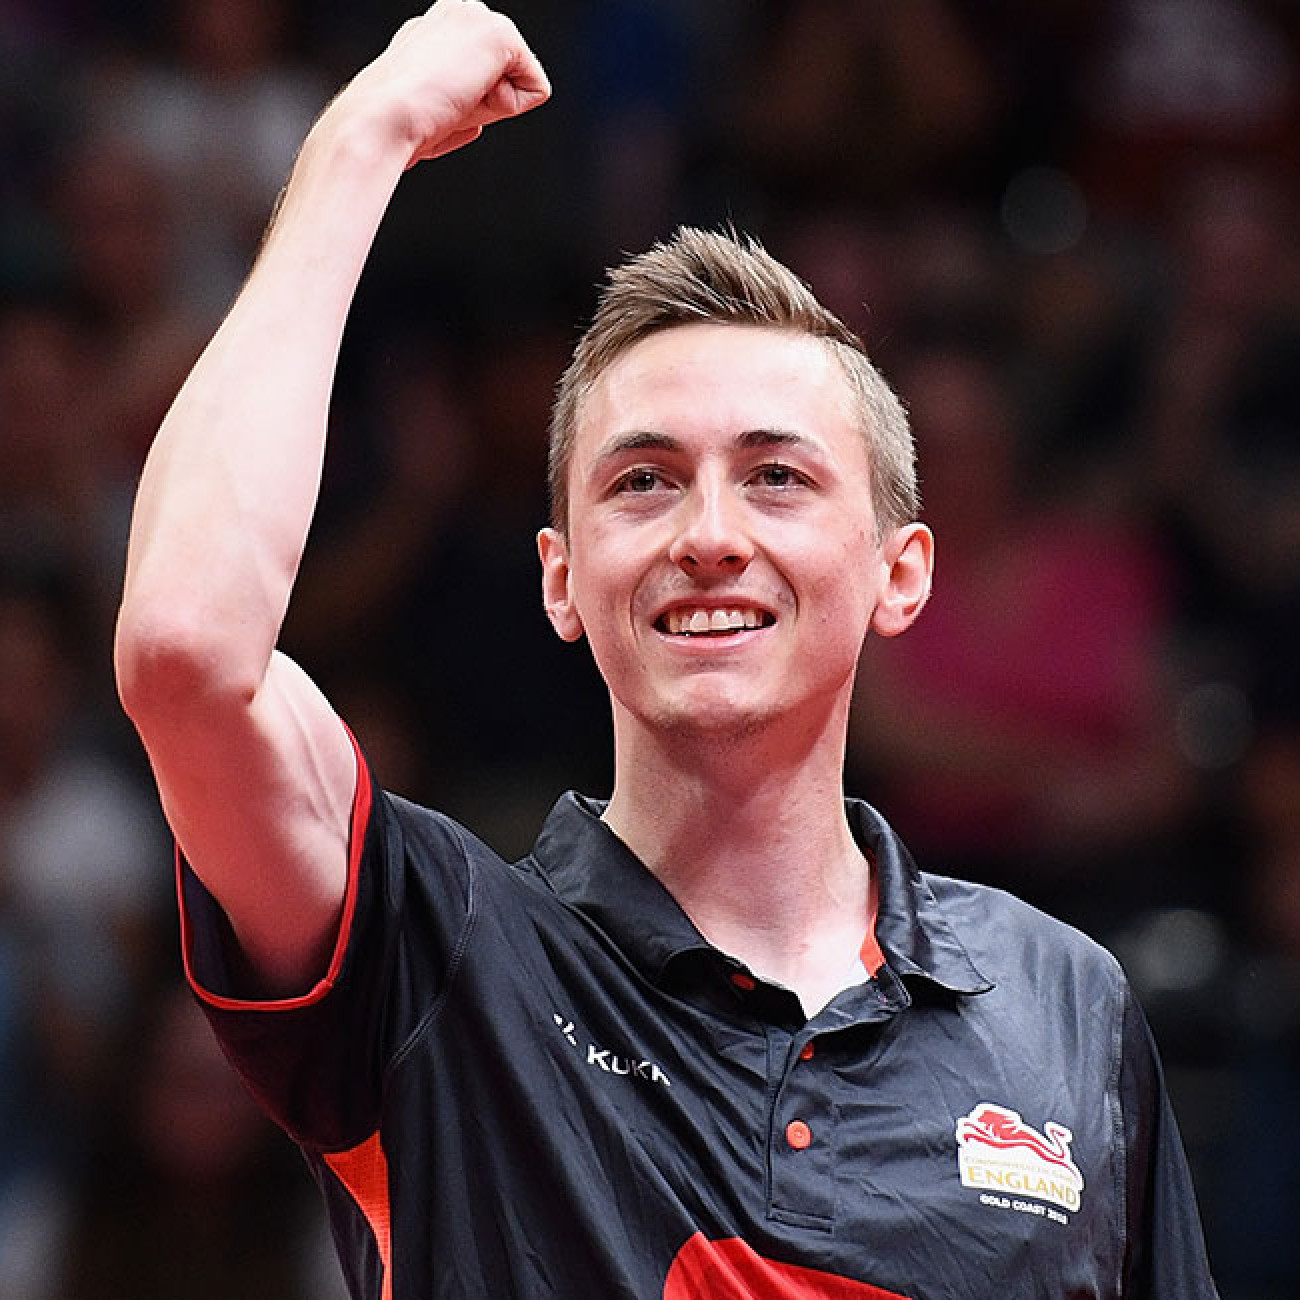 Liam Pitchford of England celebrates winning the mixed doubles semifinal Table Tennis match against India.